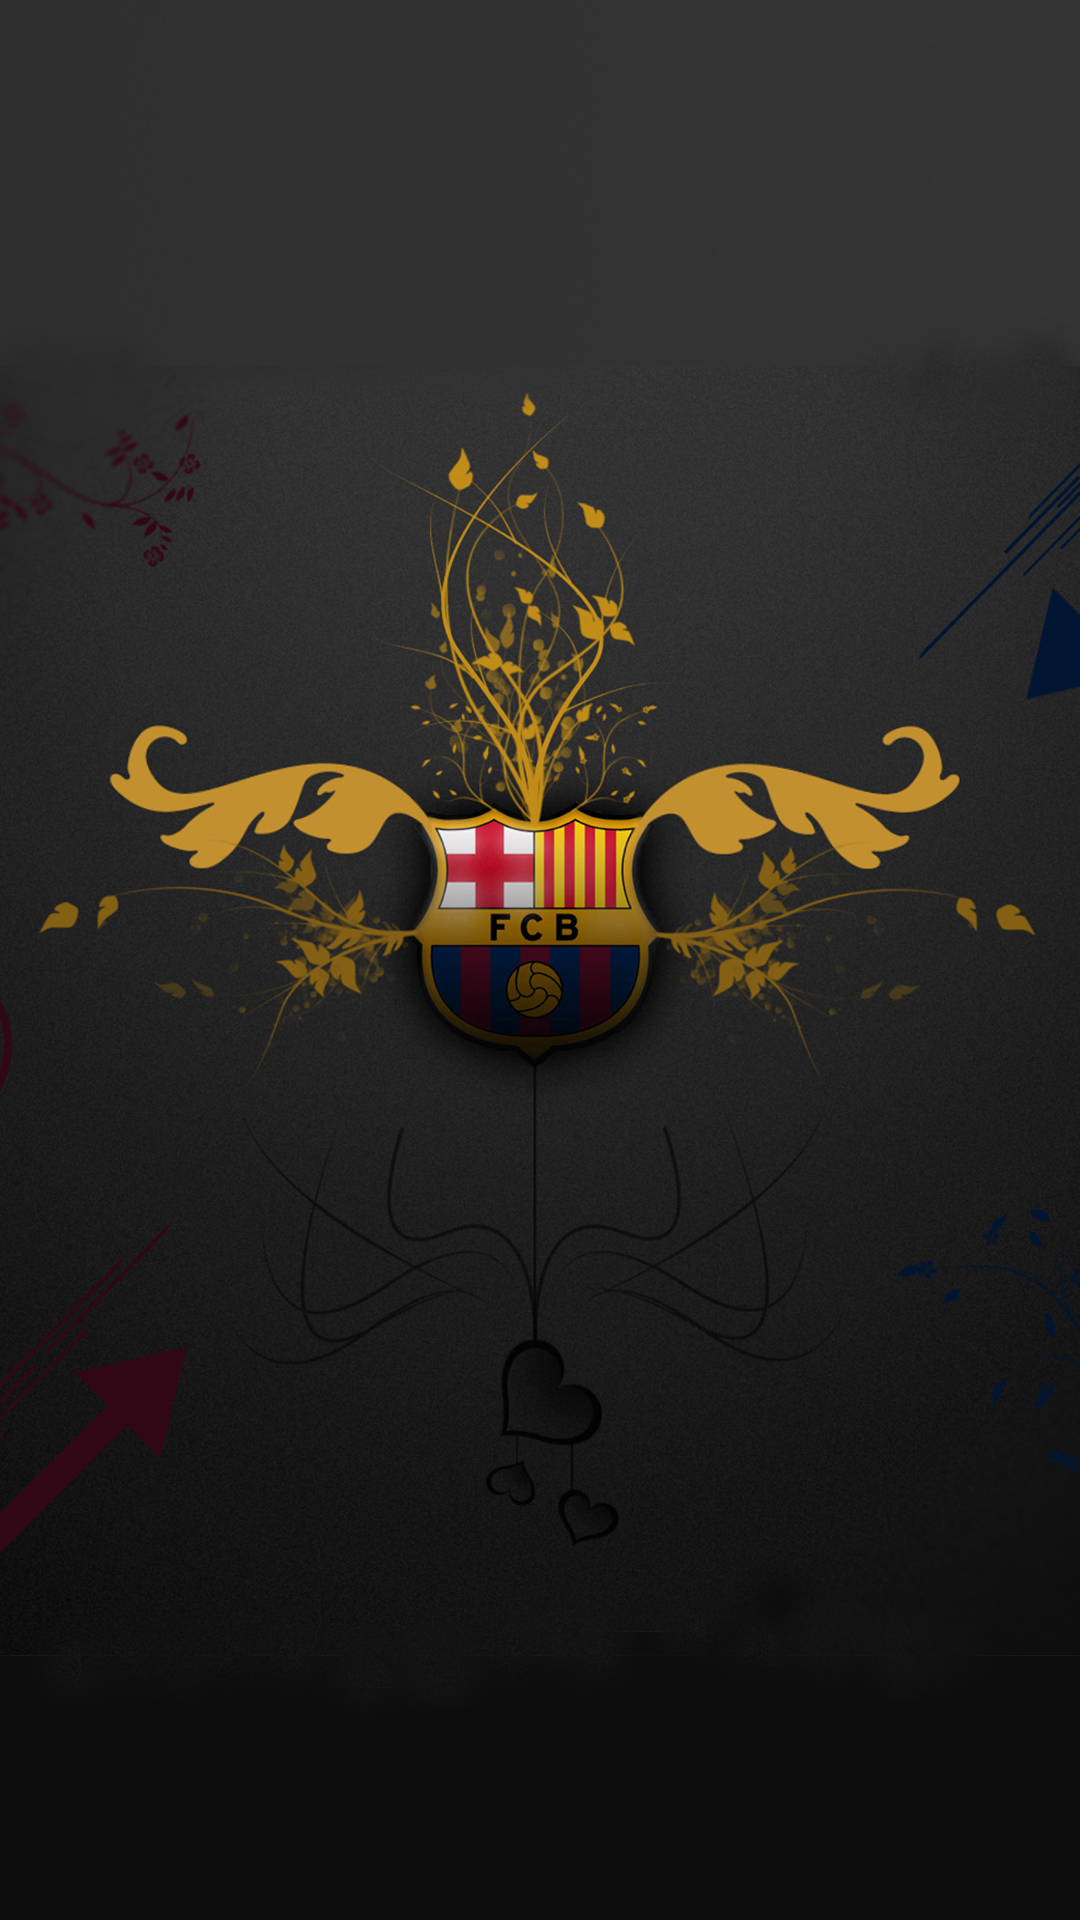 File-attachment-for-Artistic-FC-Barcelona-Logo-of-Apple-iPhone-s-Plus-wallpaper-wpc9004928